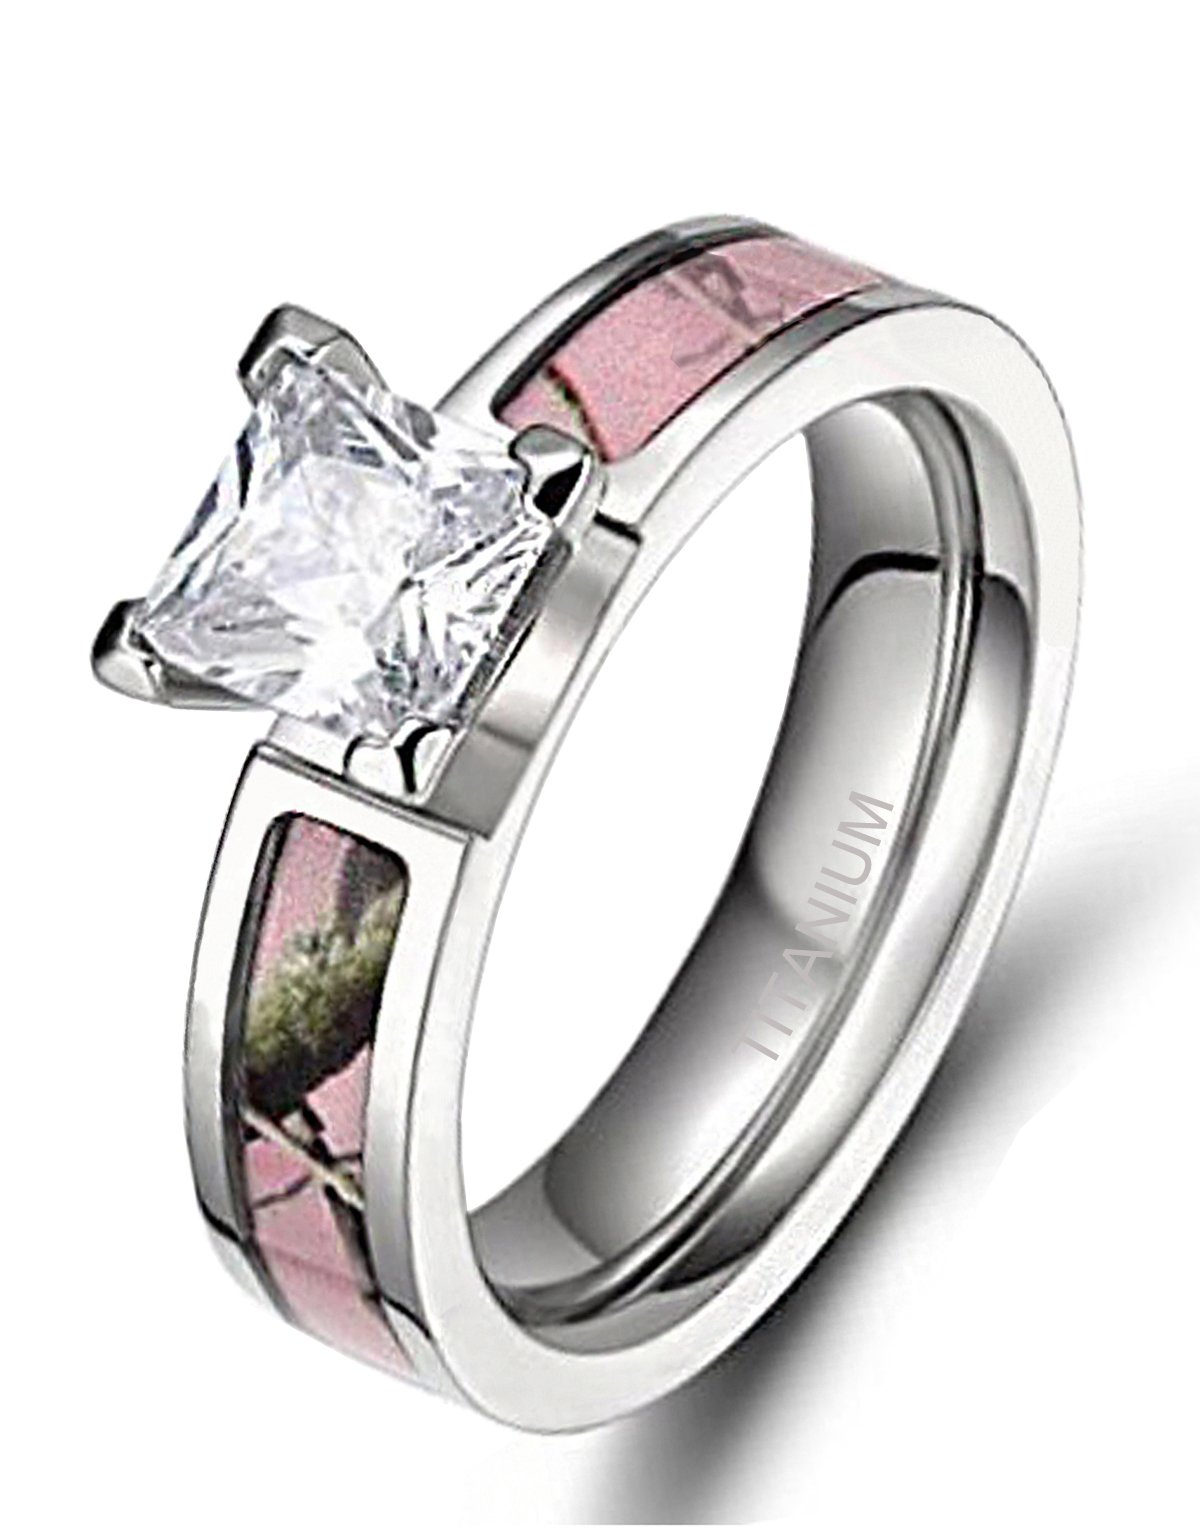 Titansten Women's Pink Camo Titanium Engagement Rings with Cubic Zirconia Polished Finish Comfort Fit (7)